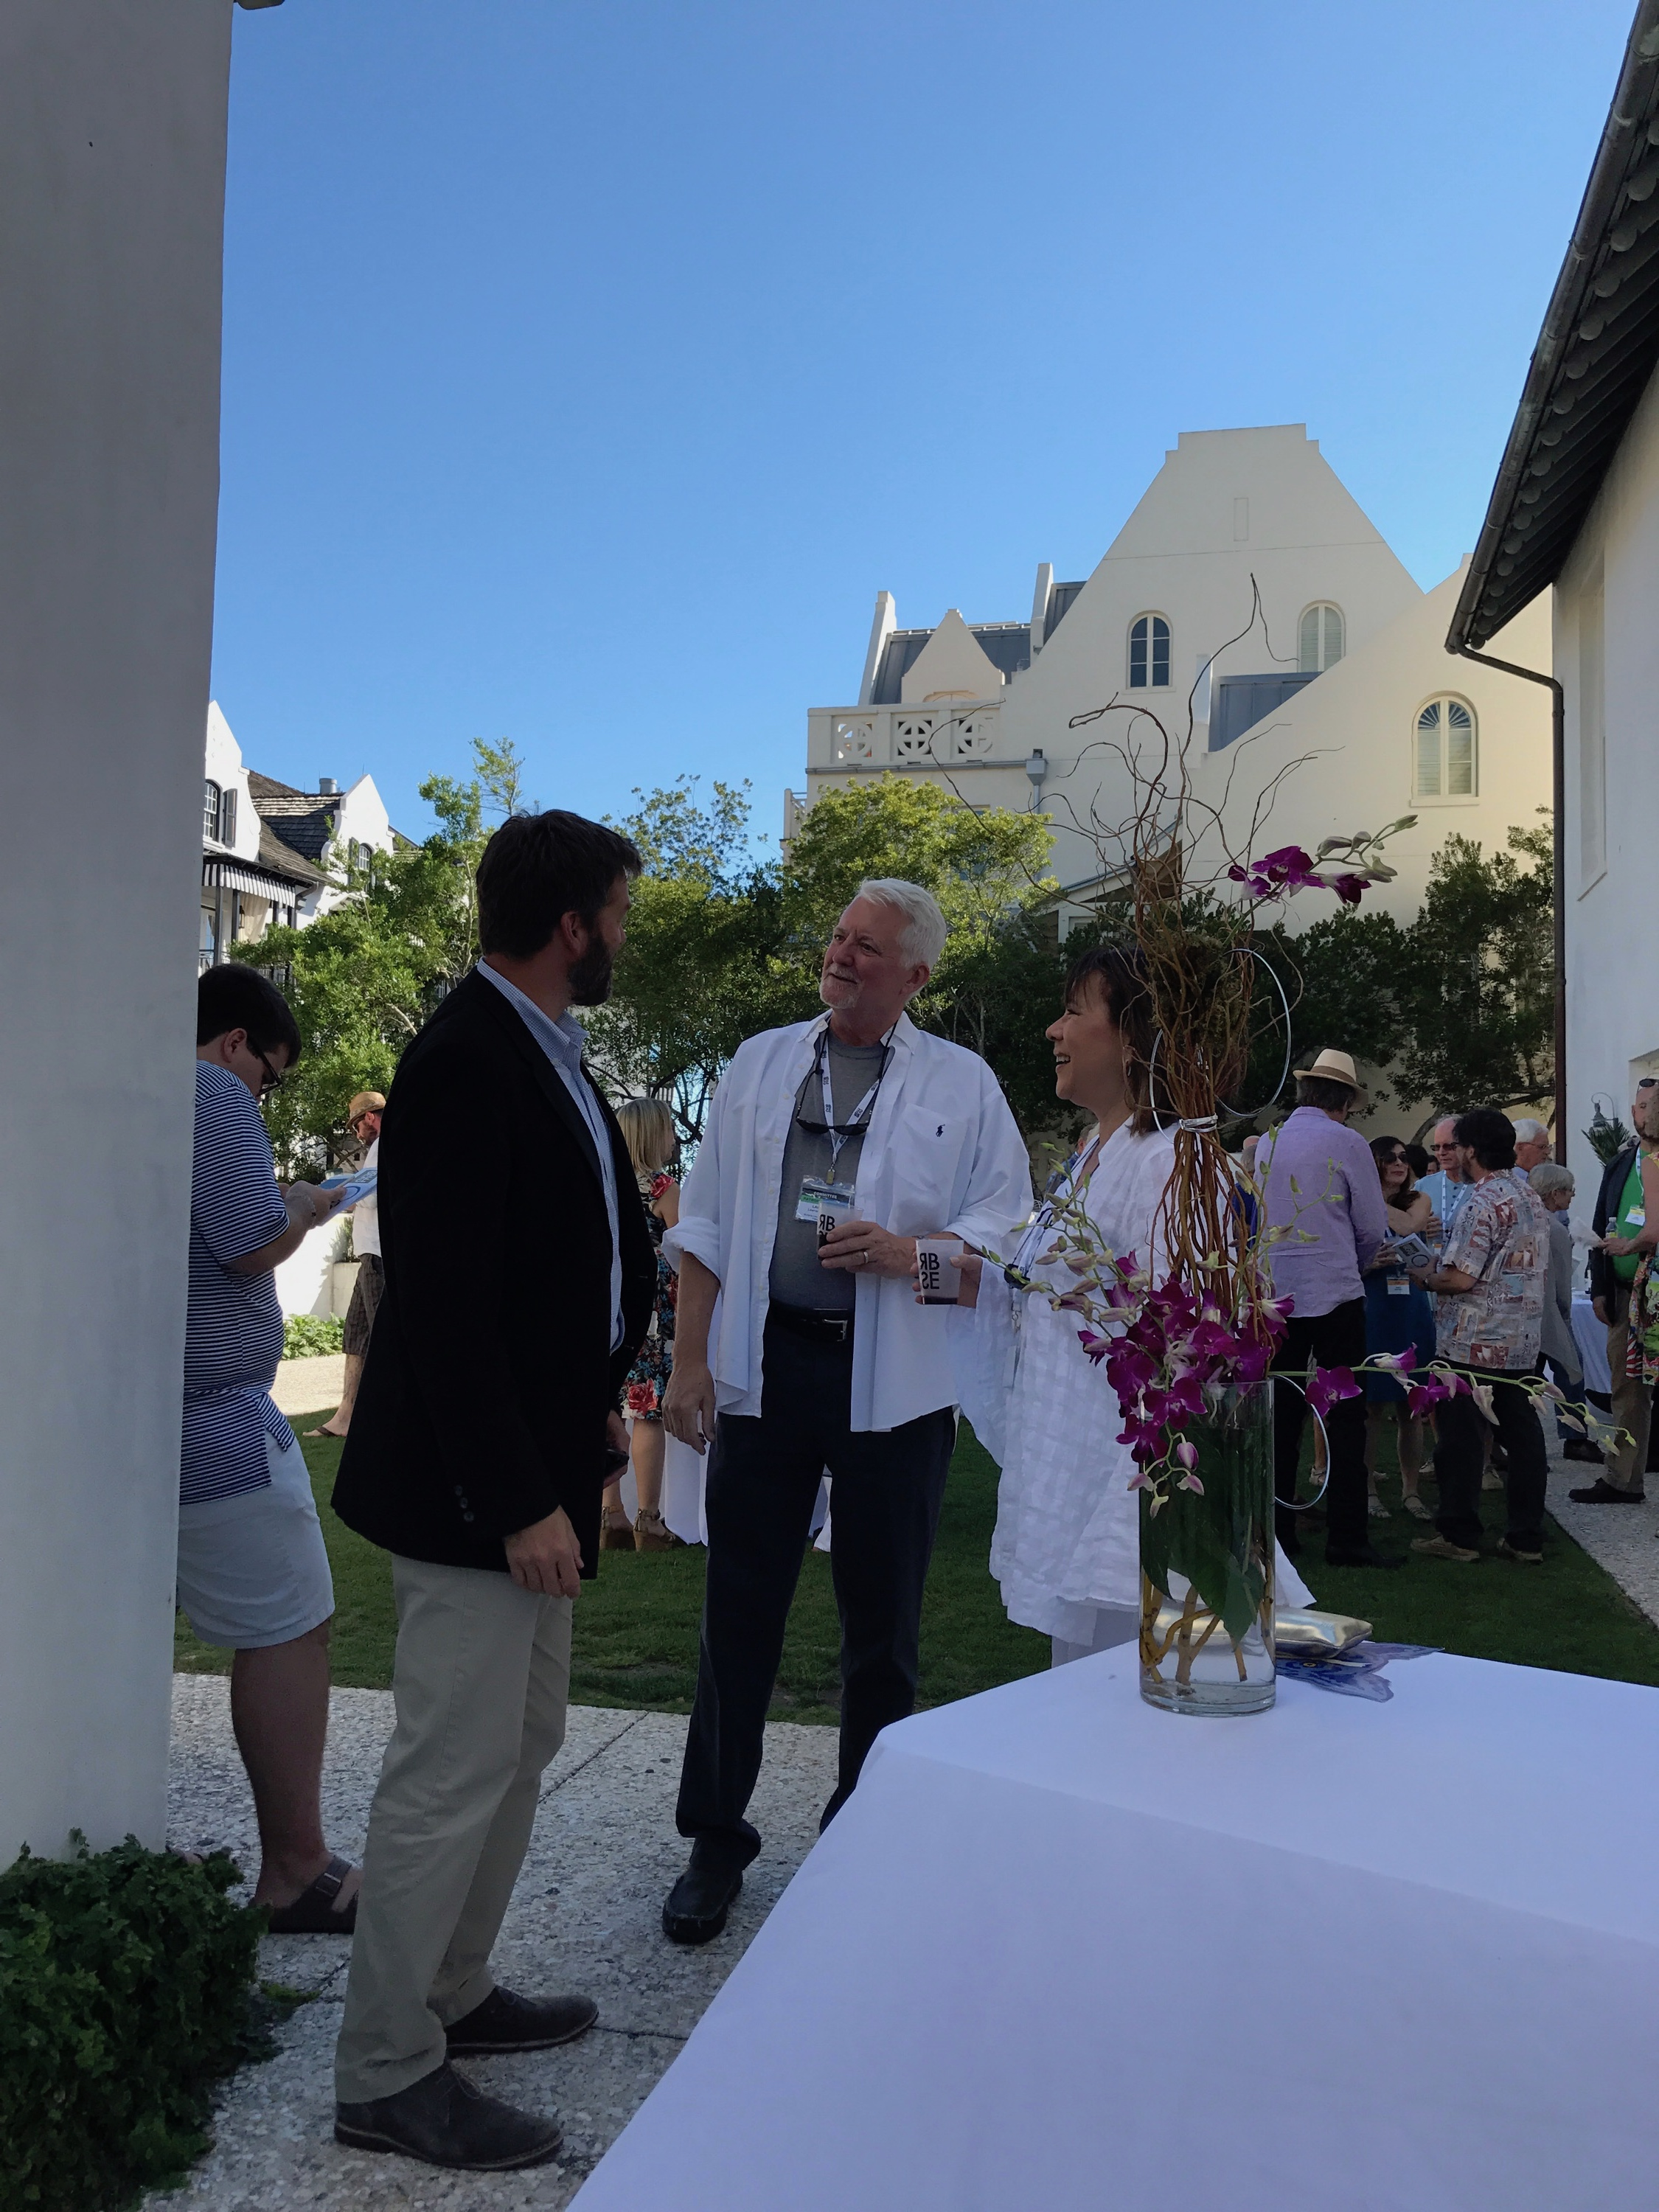 - From left, Rosemary Beach Town Manager David Bailey with Lawrence Pugh and Victoria Lee at the Opening Reception.